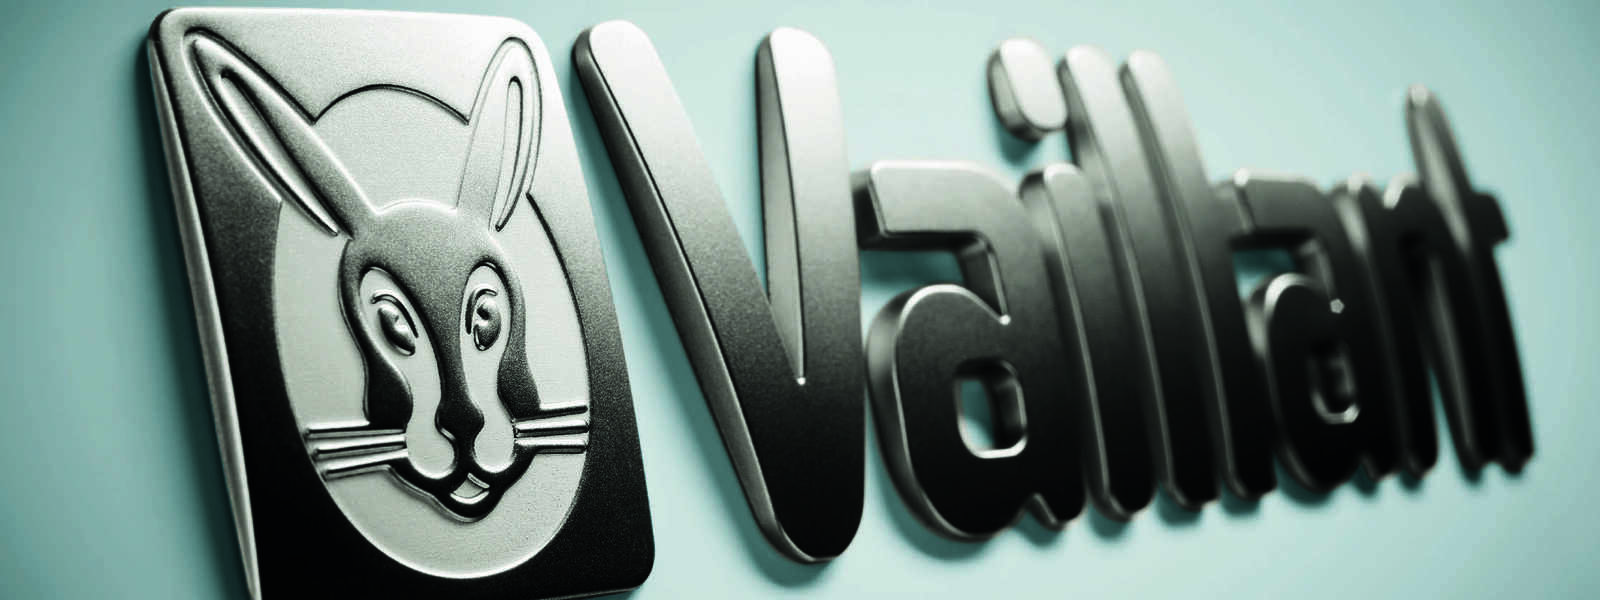 //www.vaillant.nl/media-master/global-media/vaillant/promotion/silence/still12-1075-01-45631-format-24-9@1600@desktop.jpg